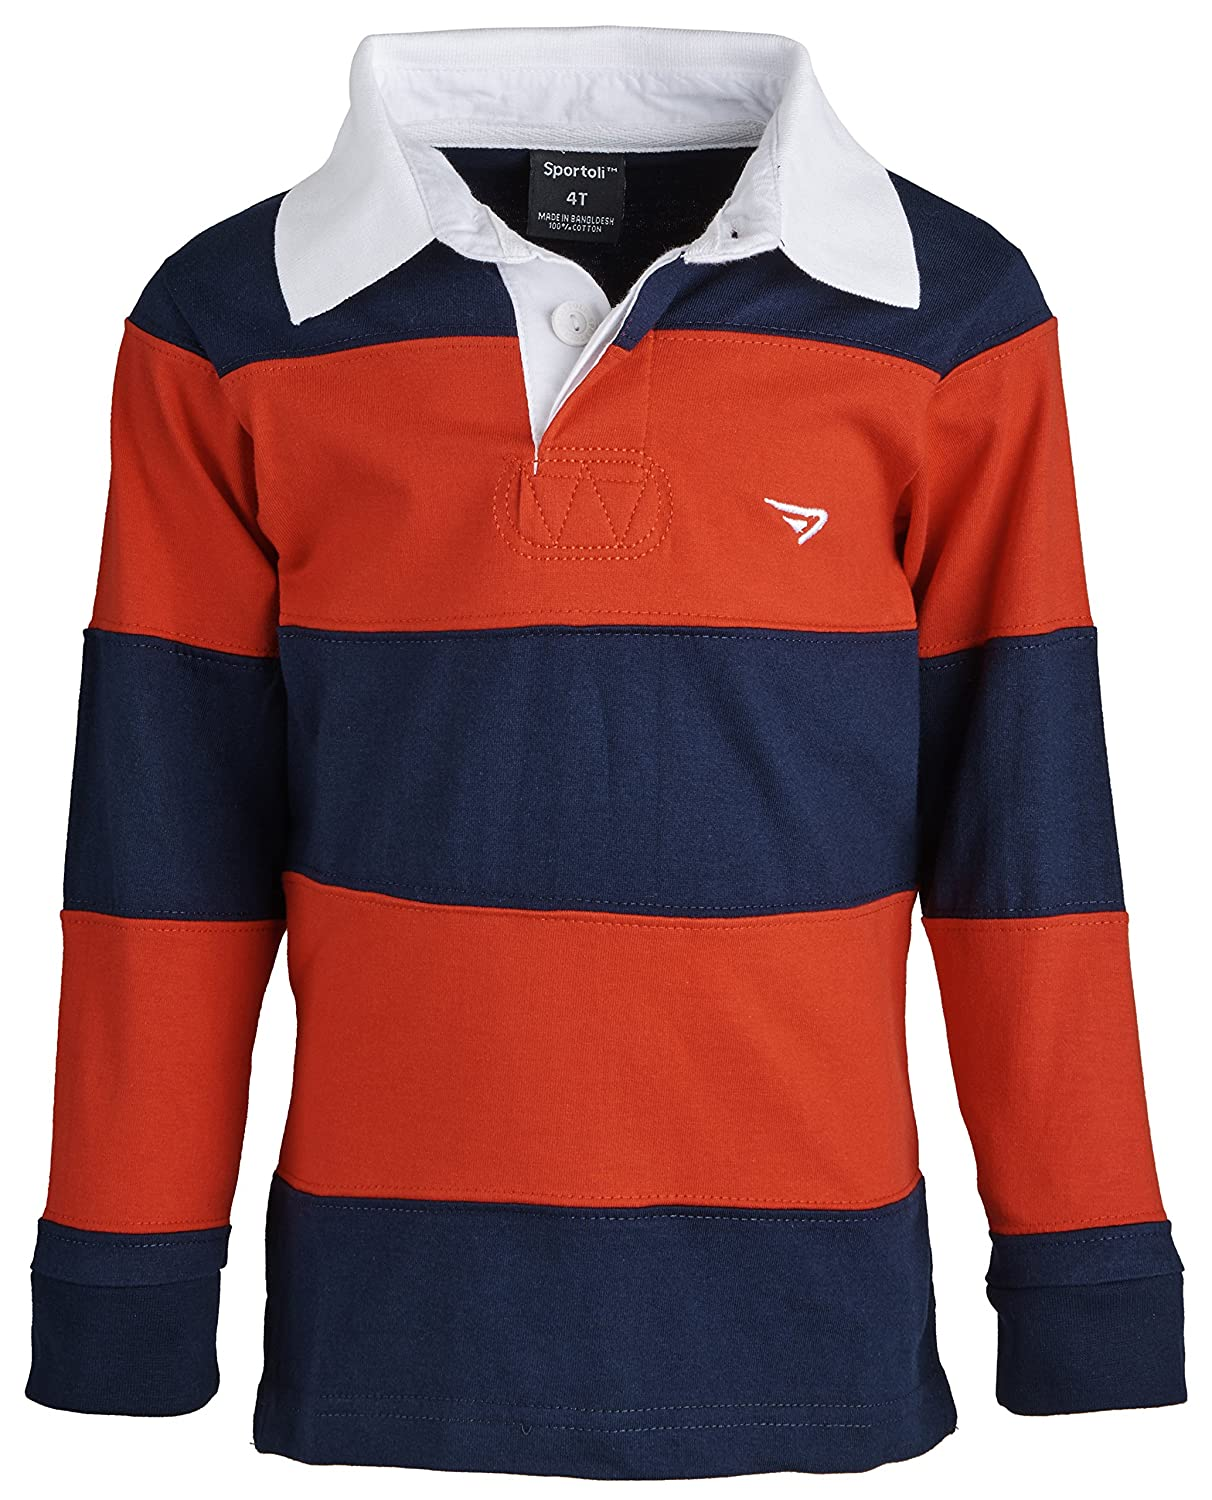 Sportoli 174; Boys 100% Cotton Wide Striped Long Sleeve Polo Rugby Shirt